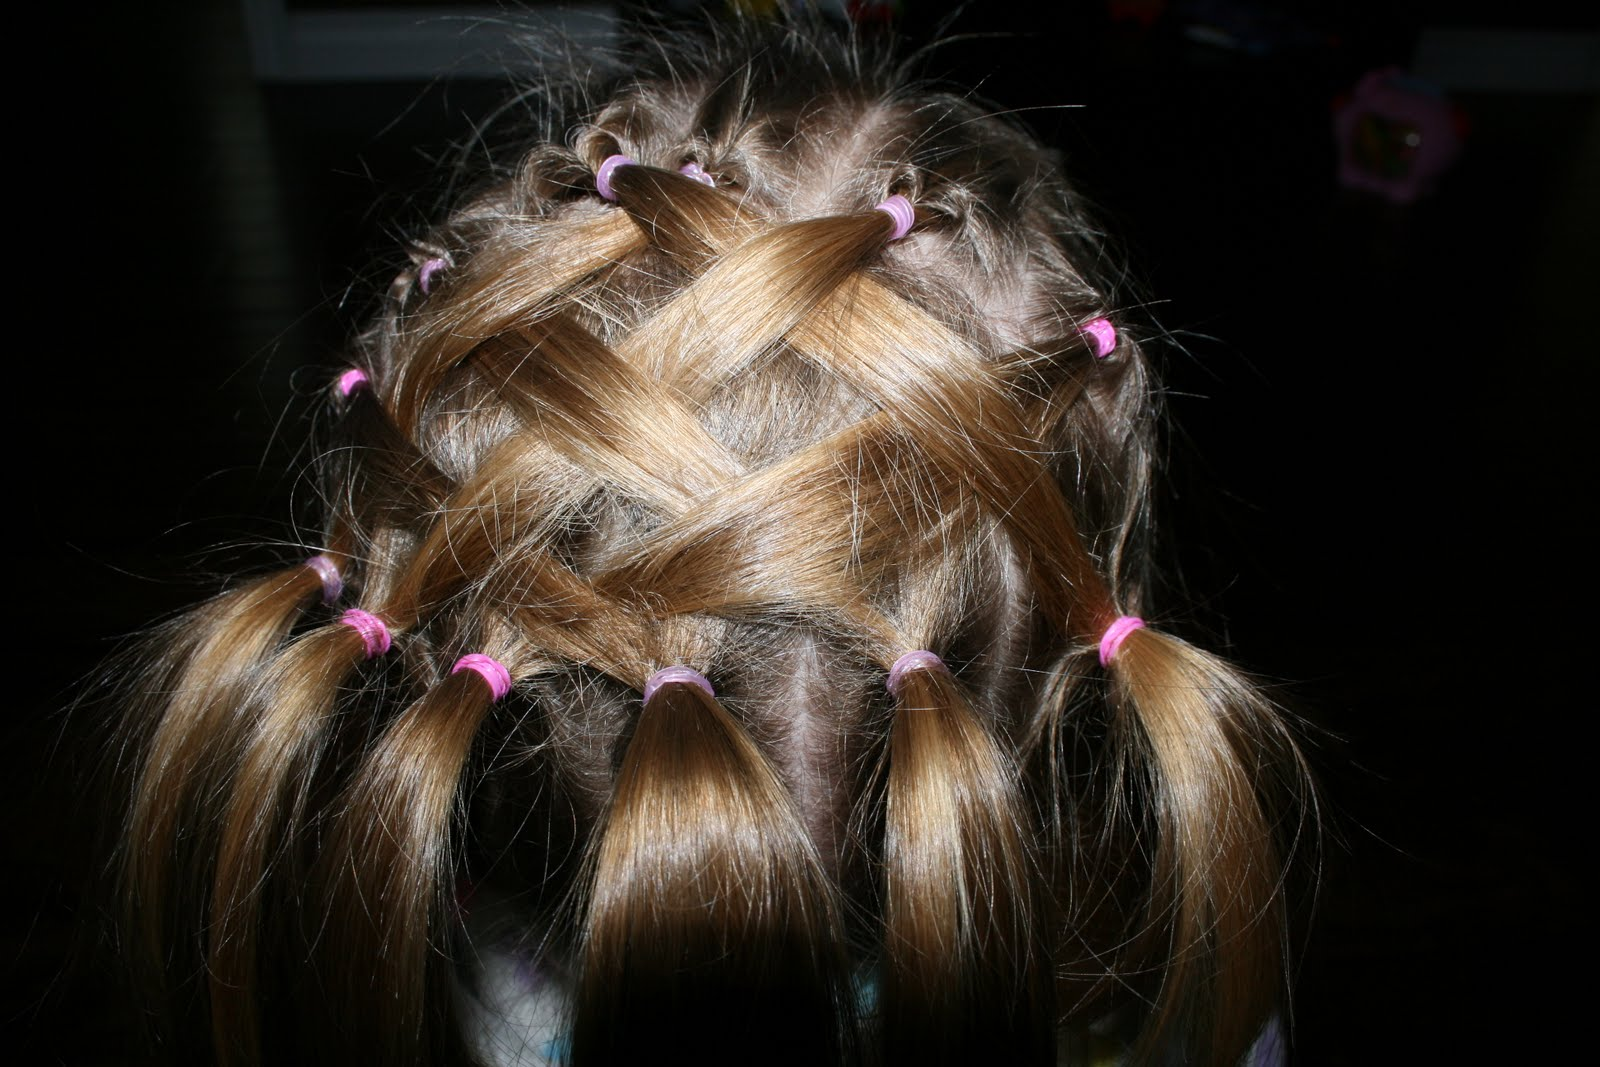 Hair Styles Hair Styles Using Rubber Bands